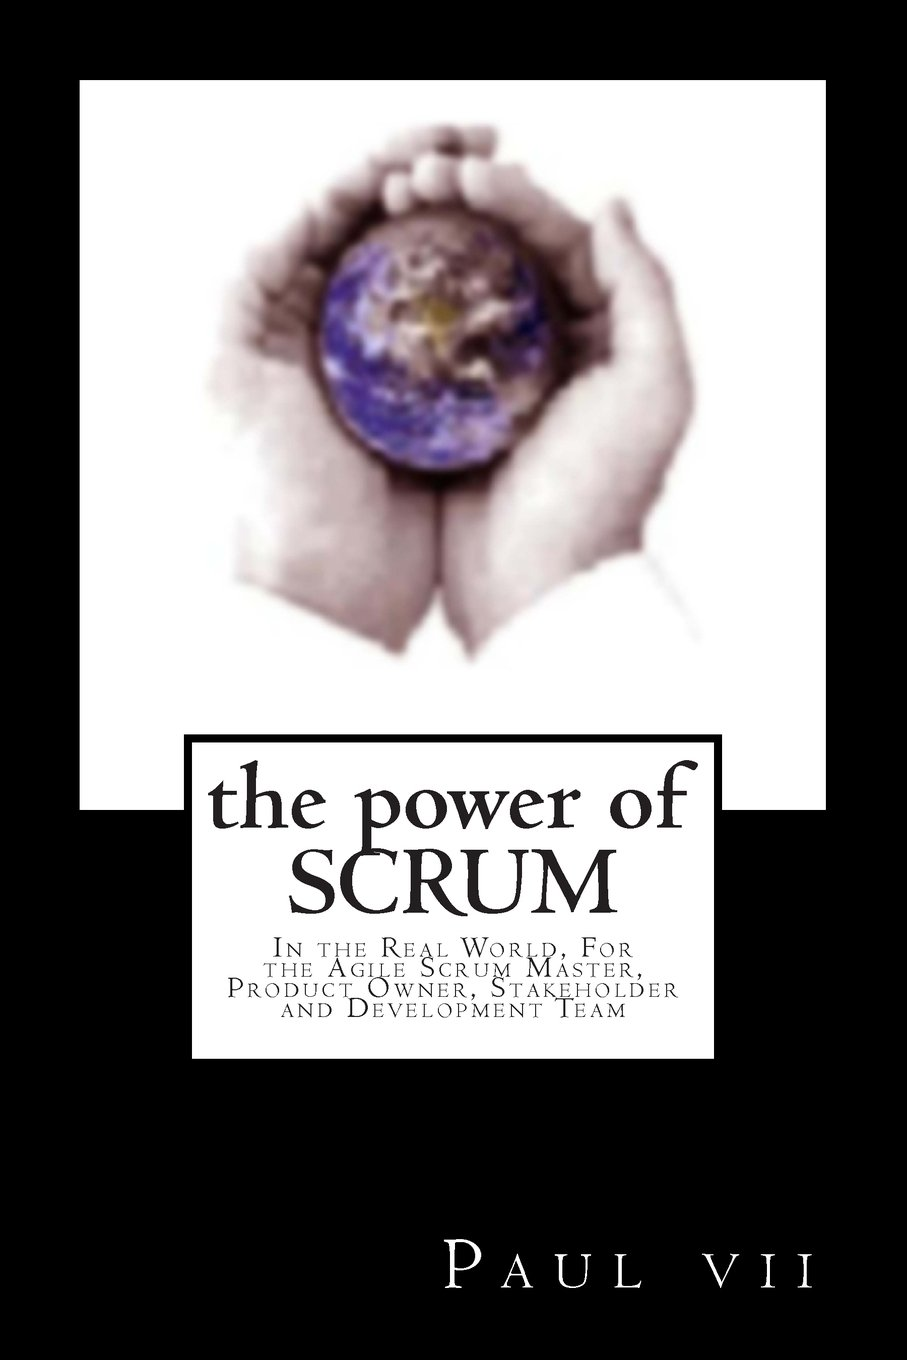 the-power-of-scrum-in-the-real-world-for-the-agile-scrum-master-product-owner